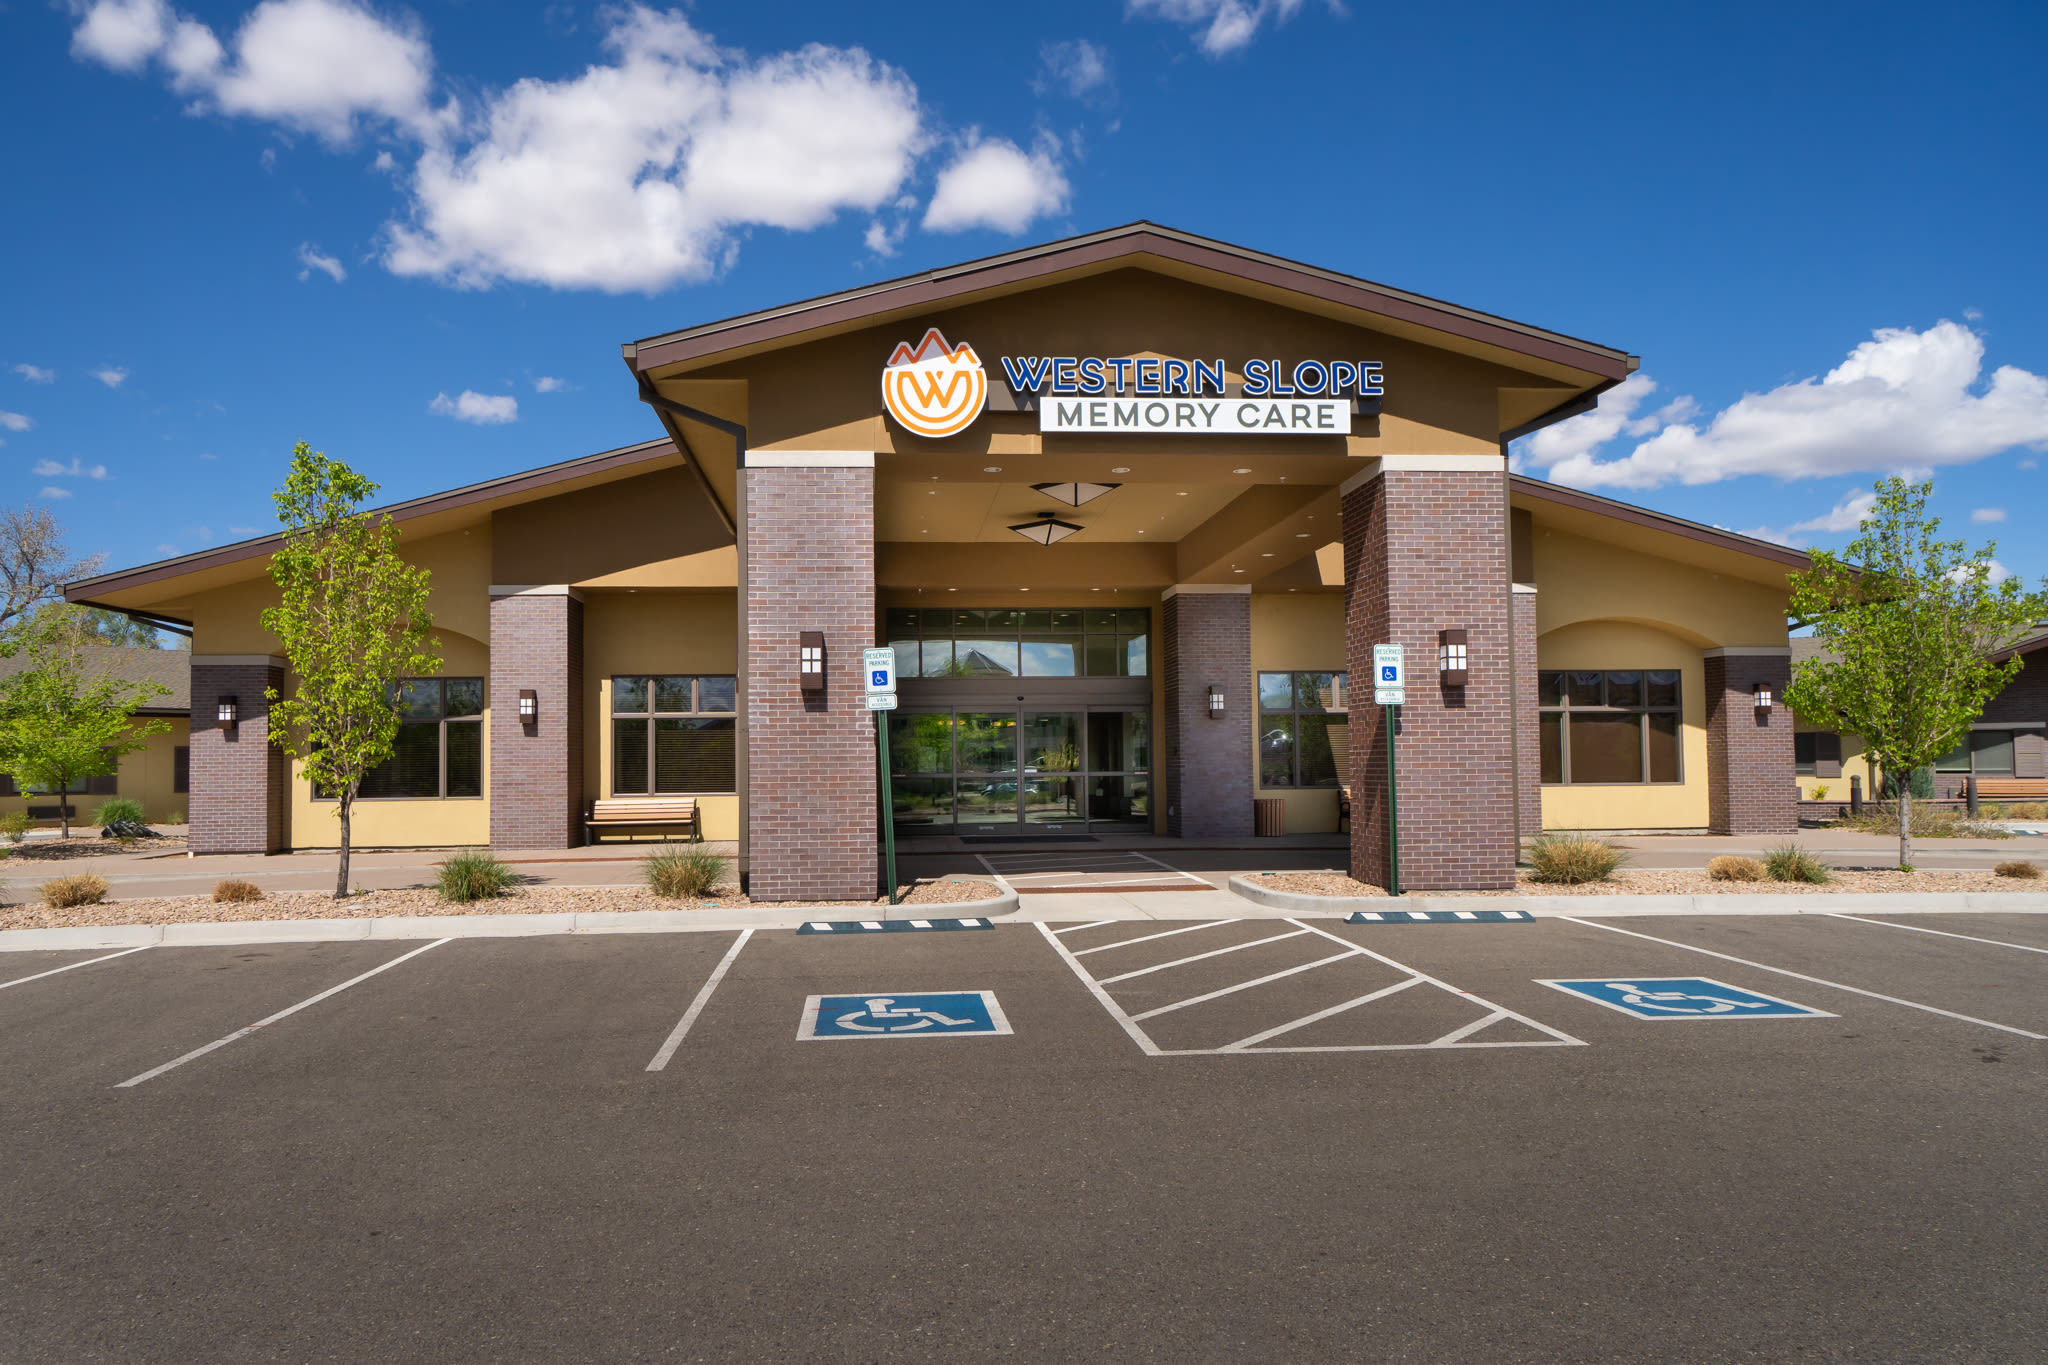 Welcoming front entrance of Western Slope Memory Care in Grand Junction, Colorado